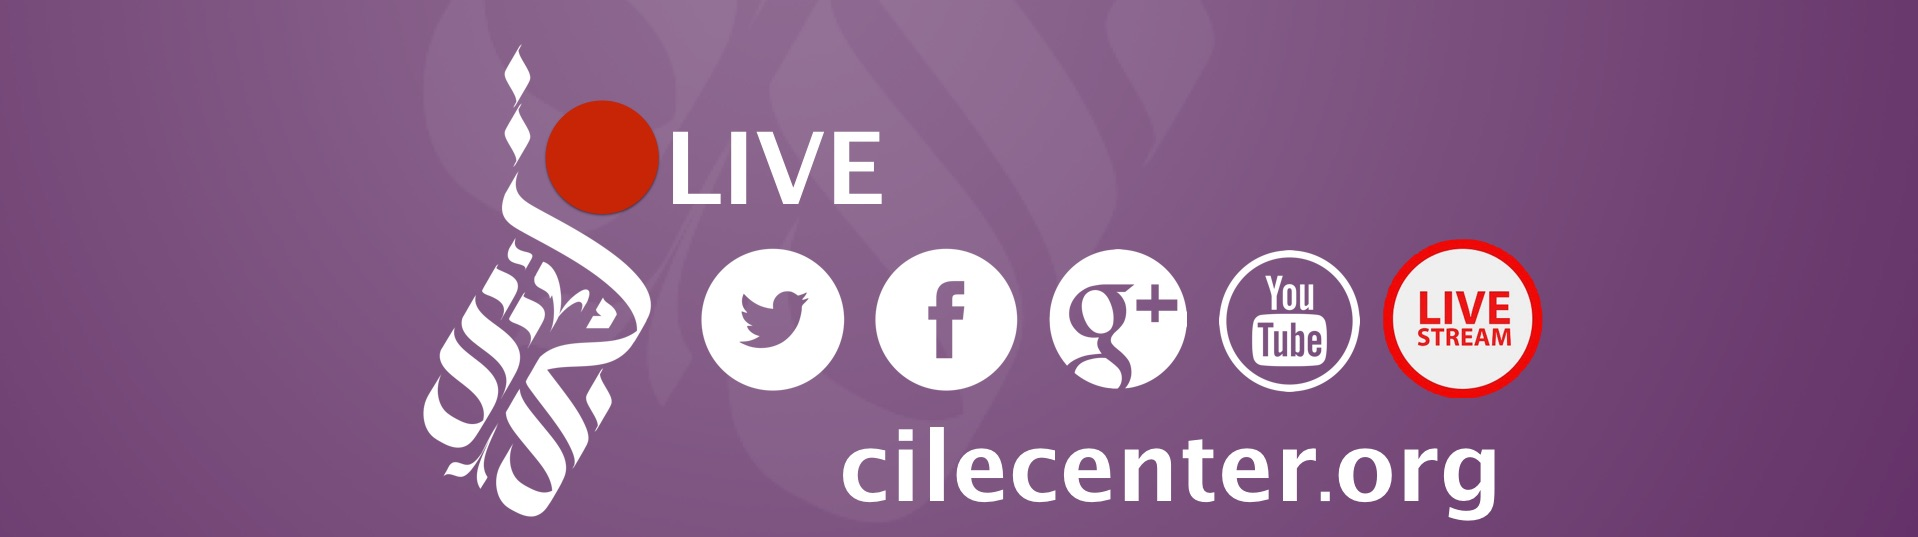 Follow #CILE2017 on Social Media and Watch the Livestream